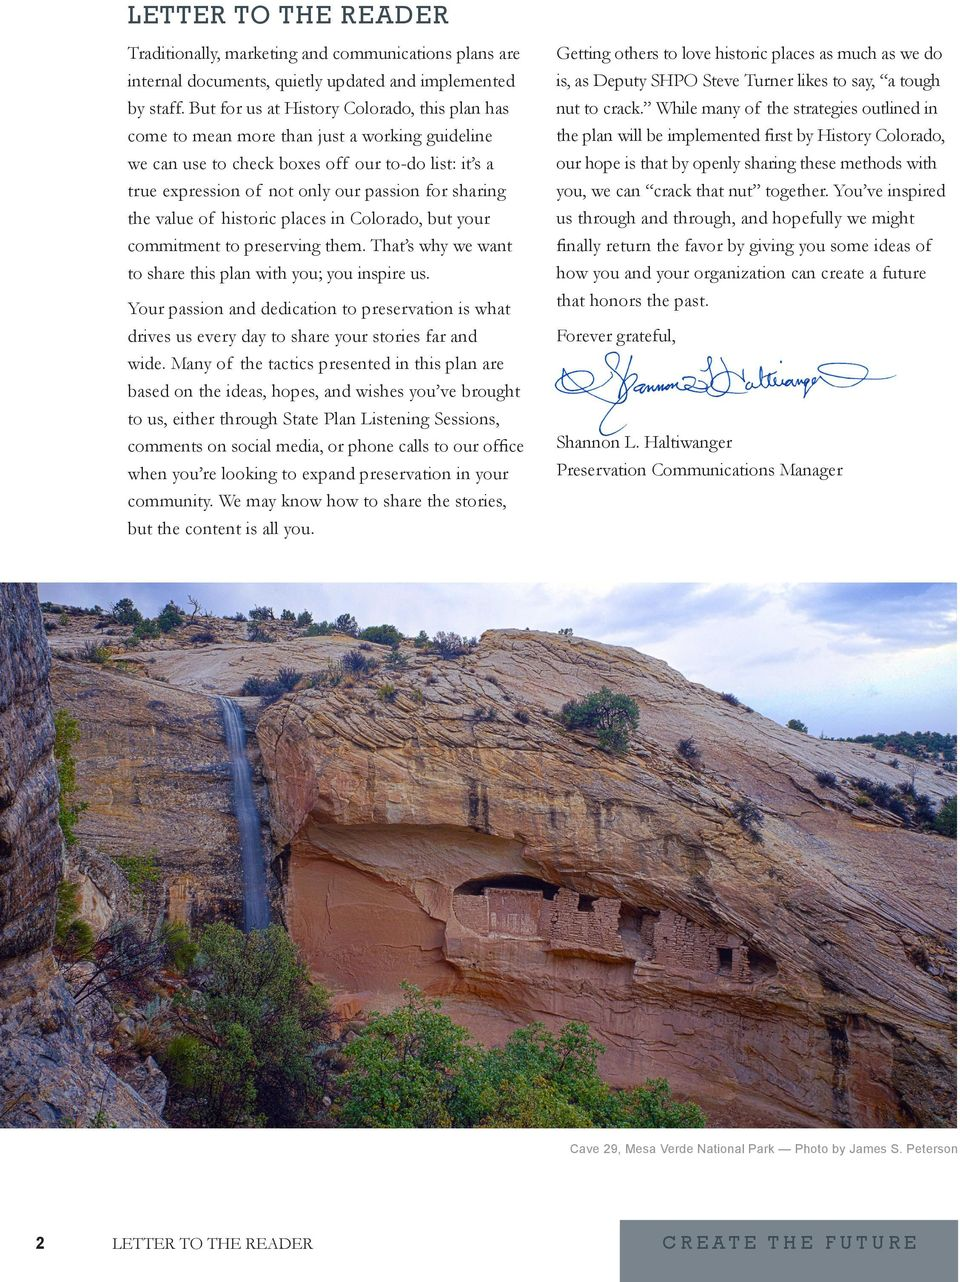 the value of historic places in Colorado, but your commitment to preserving them. That s why we want to share this plan with you; you inspire us.